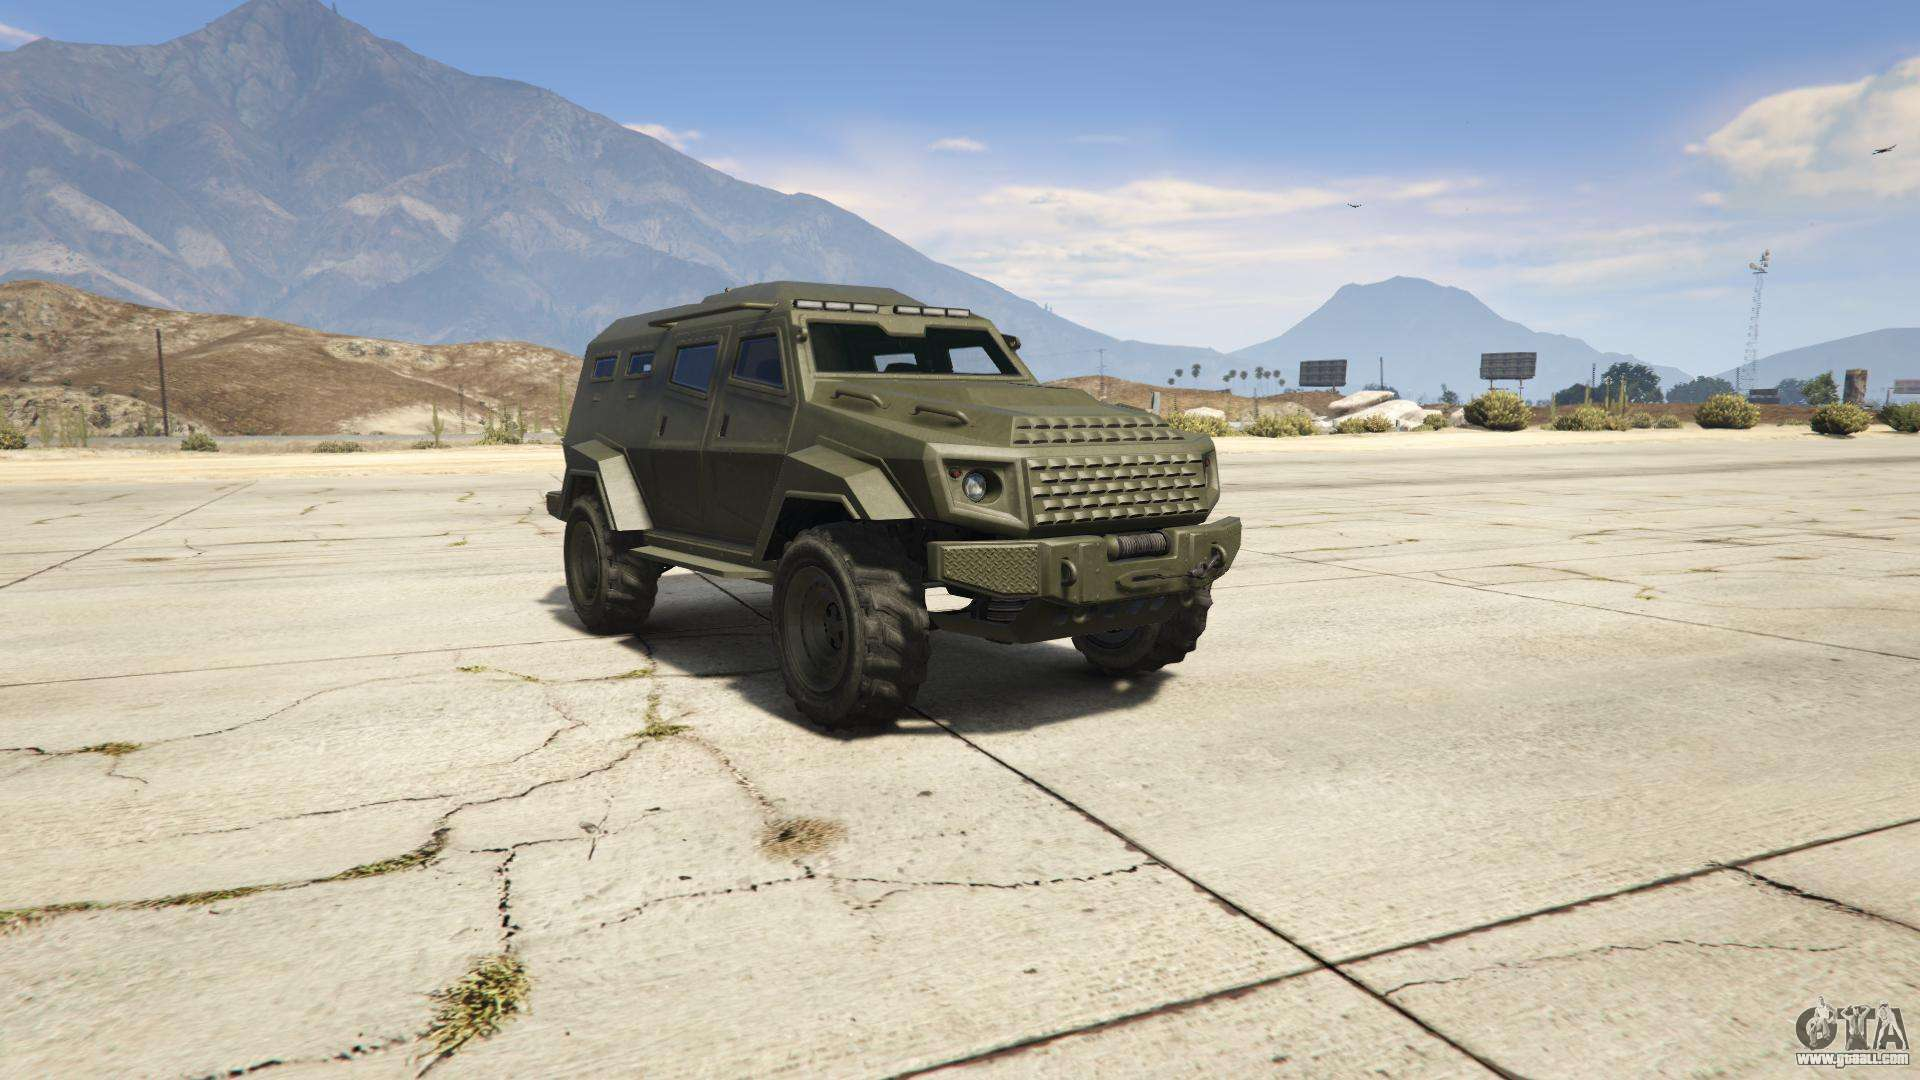 GTA 5 HVY Insurgent - screenshots, features and description the armored car.